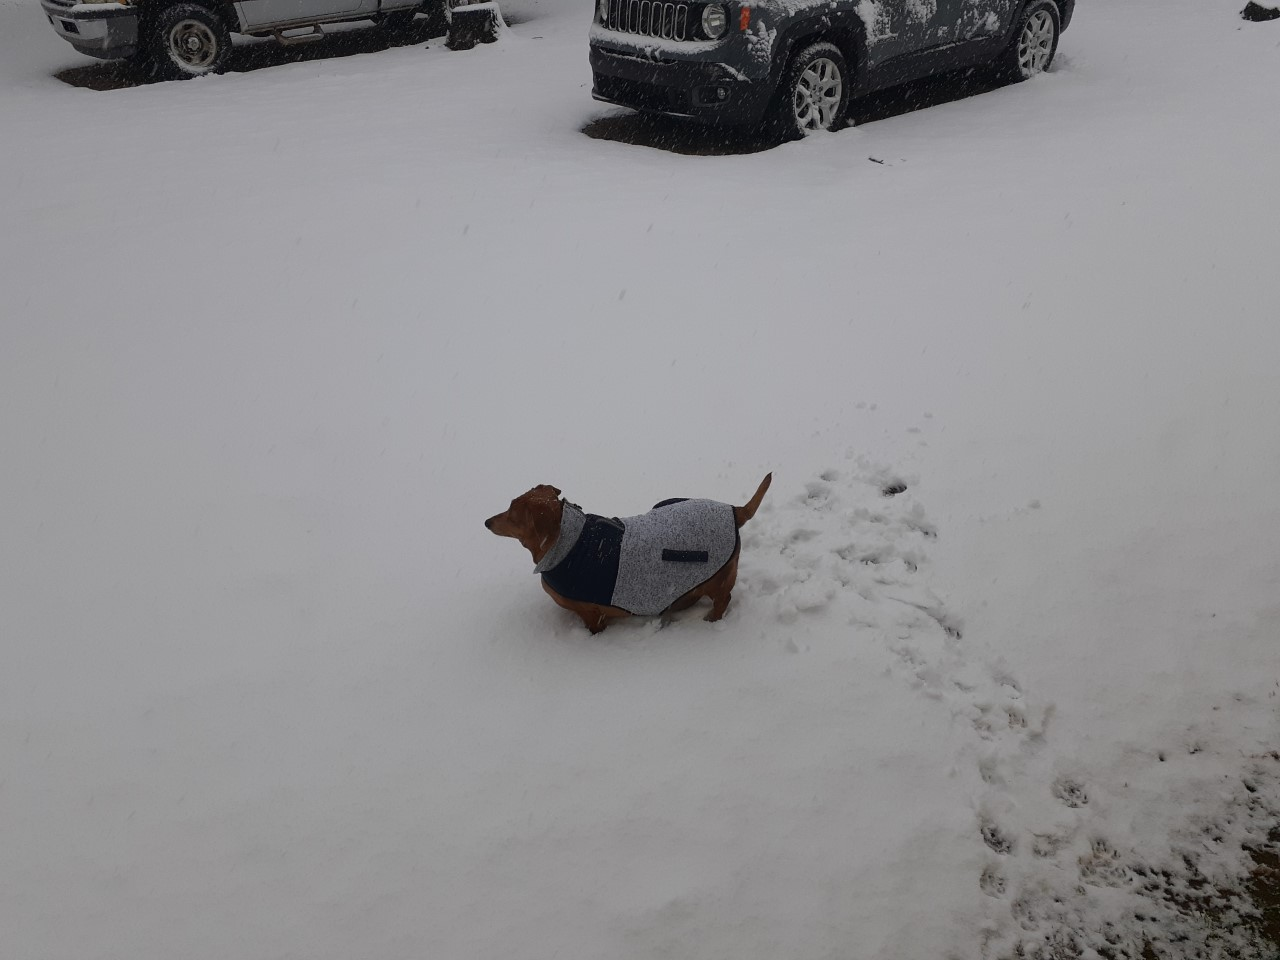 Jack playing in the snow in Jacktown